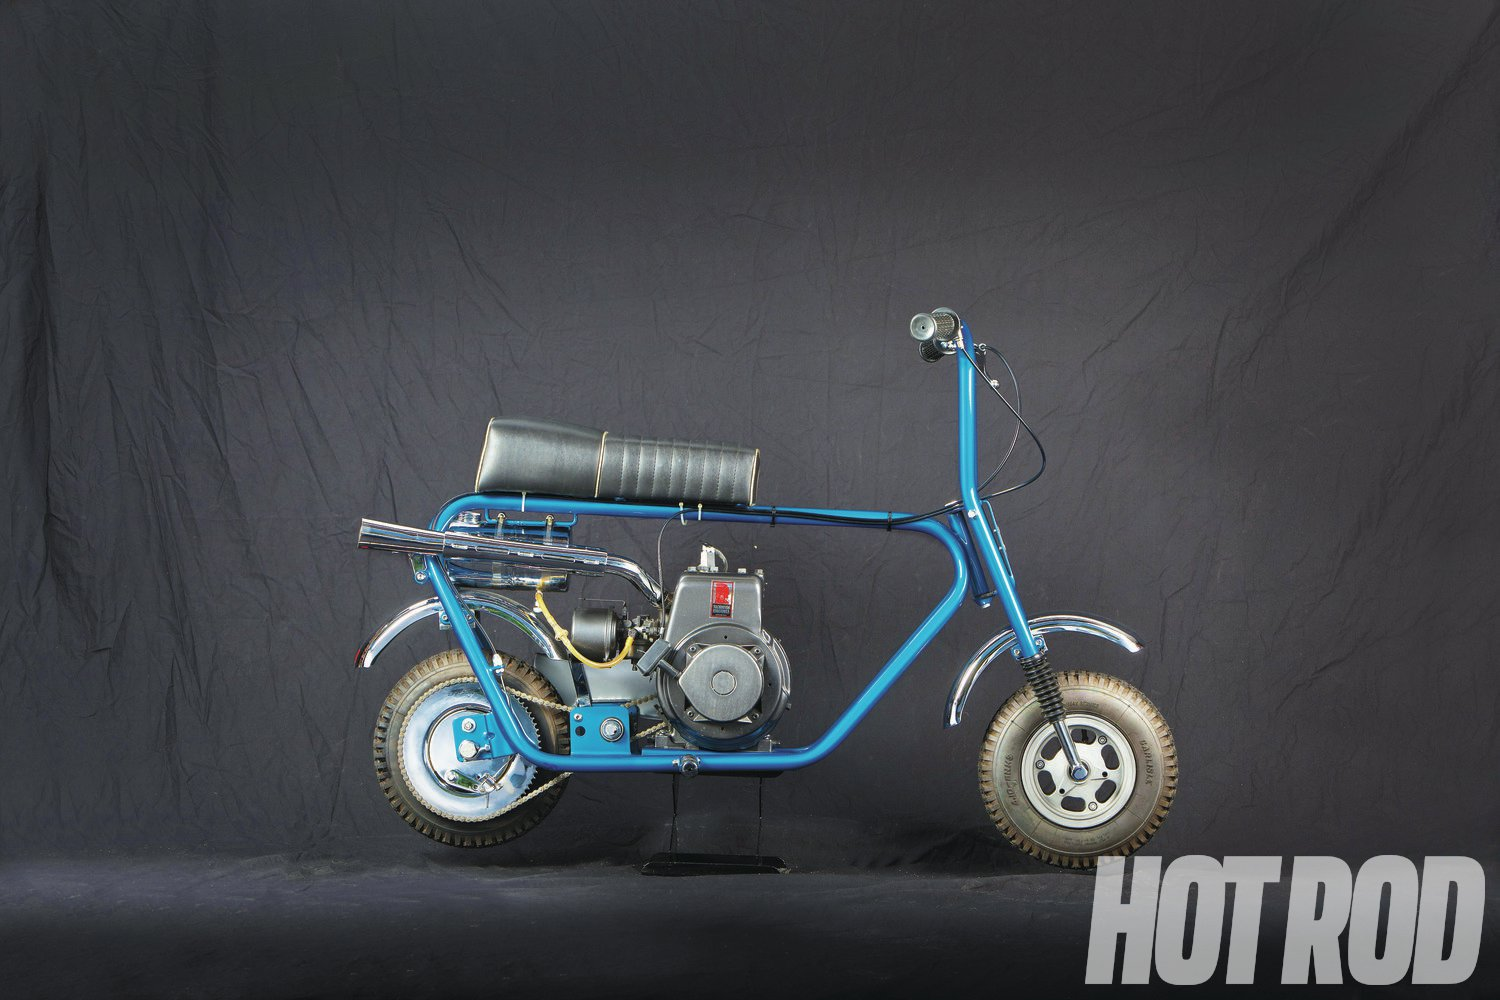 Bonanza Industries in San Jose, California, was one of the most prolific minibike companies, with many models including a chopper. Some were Hodaka powered. This is a '75 Bonanza BC1100.